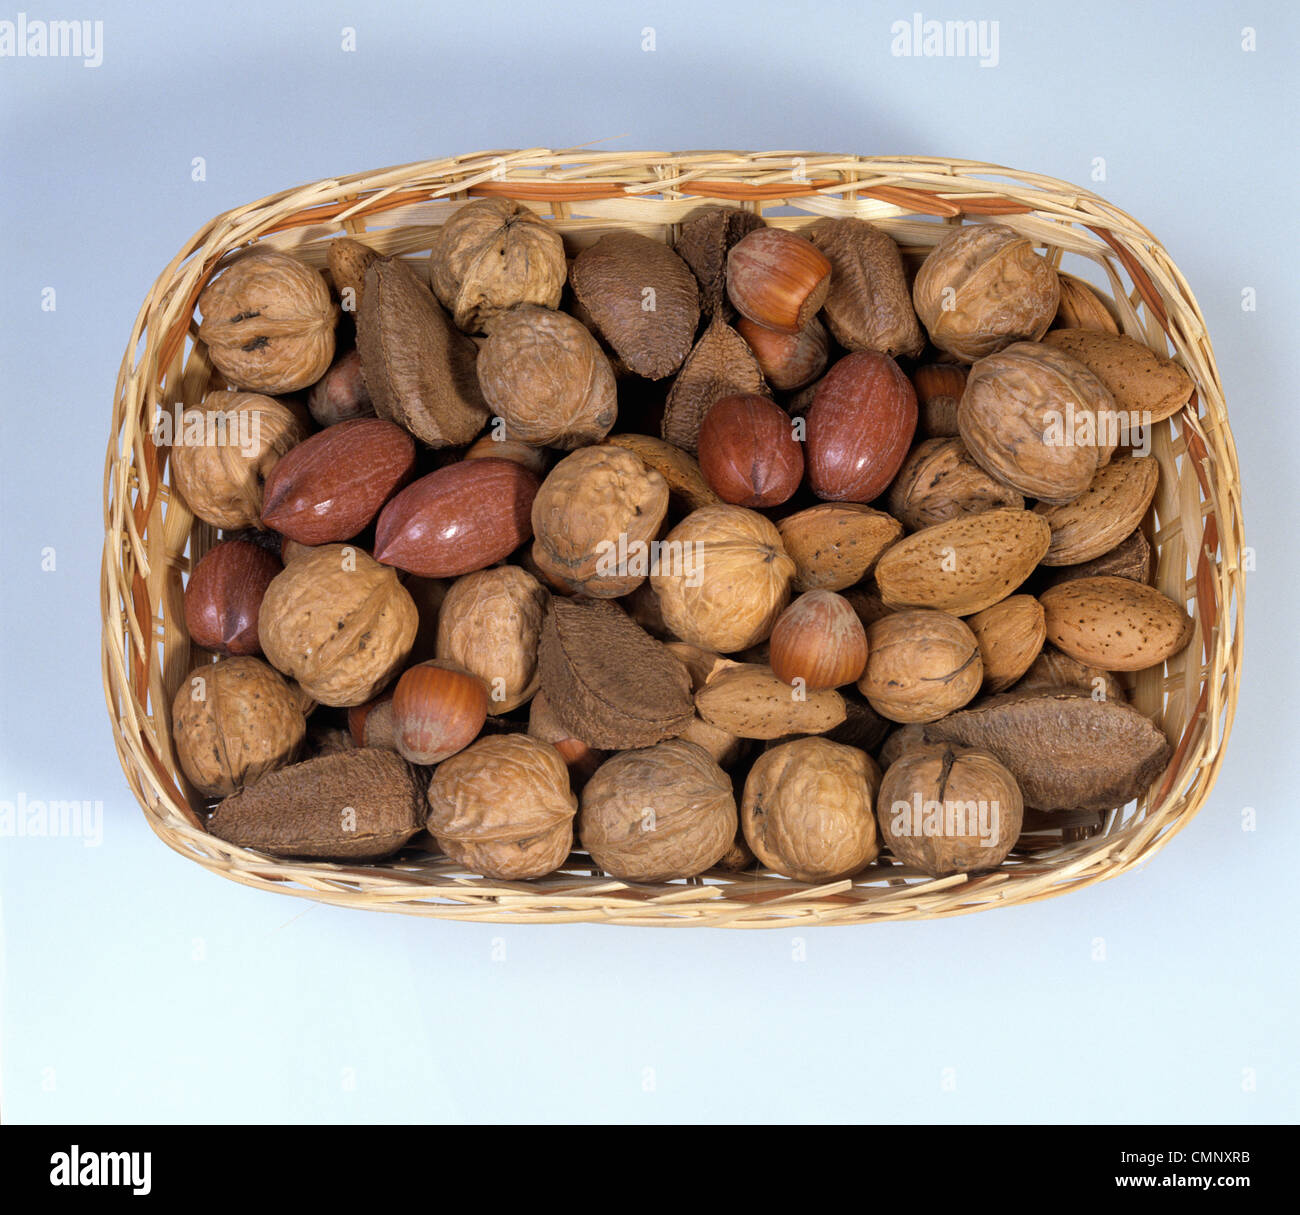 Mixed nuts in a presentation basket - Stock Image